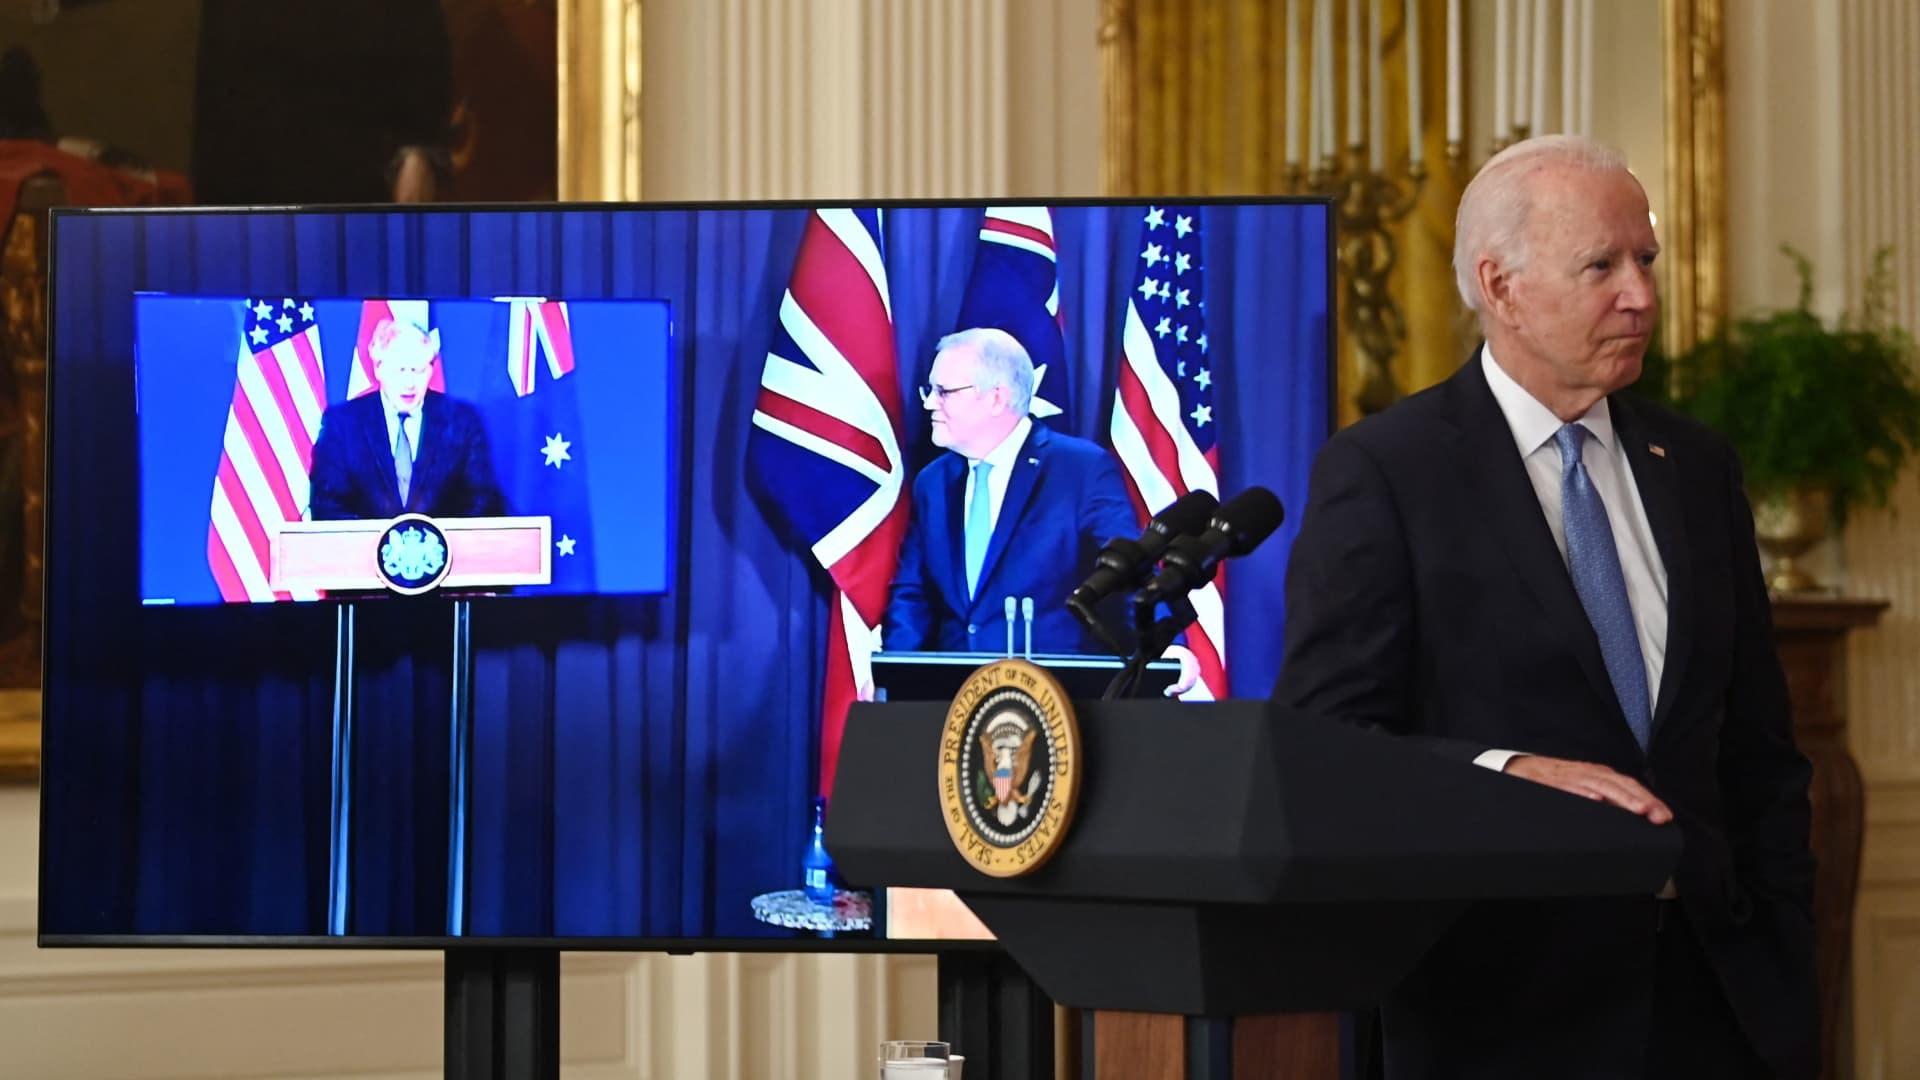 US President Joe Biden participates is a virtual press conference on national security with British Prime Minister Boris Johnson and Australian Prime Minister Scott Morrison in the East Room of the White House in Washington, DC, on September 15, 2021.